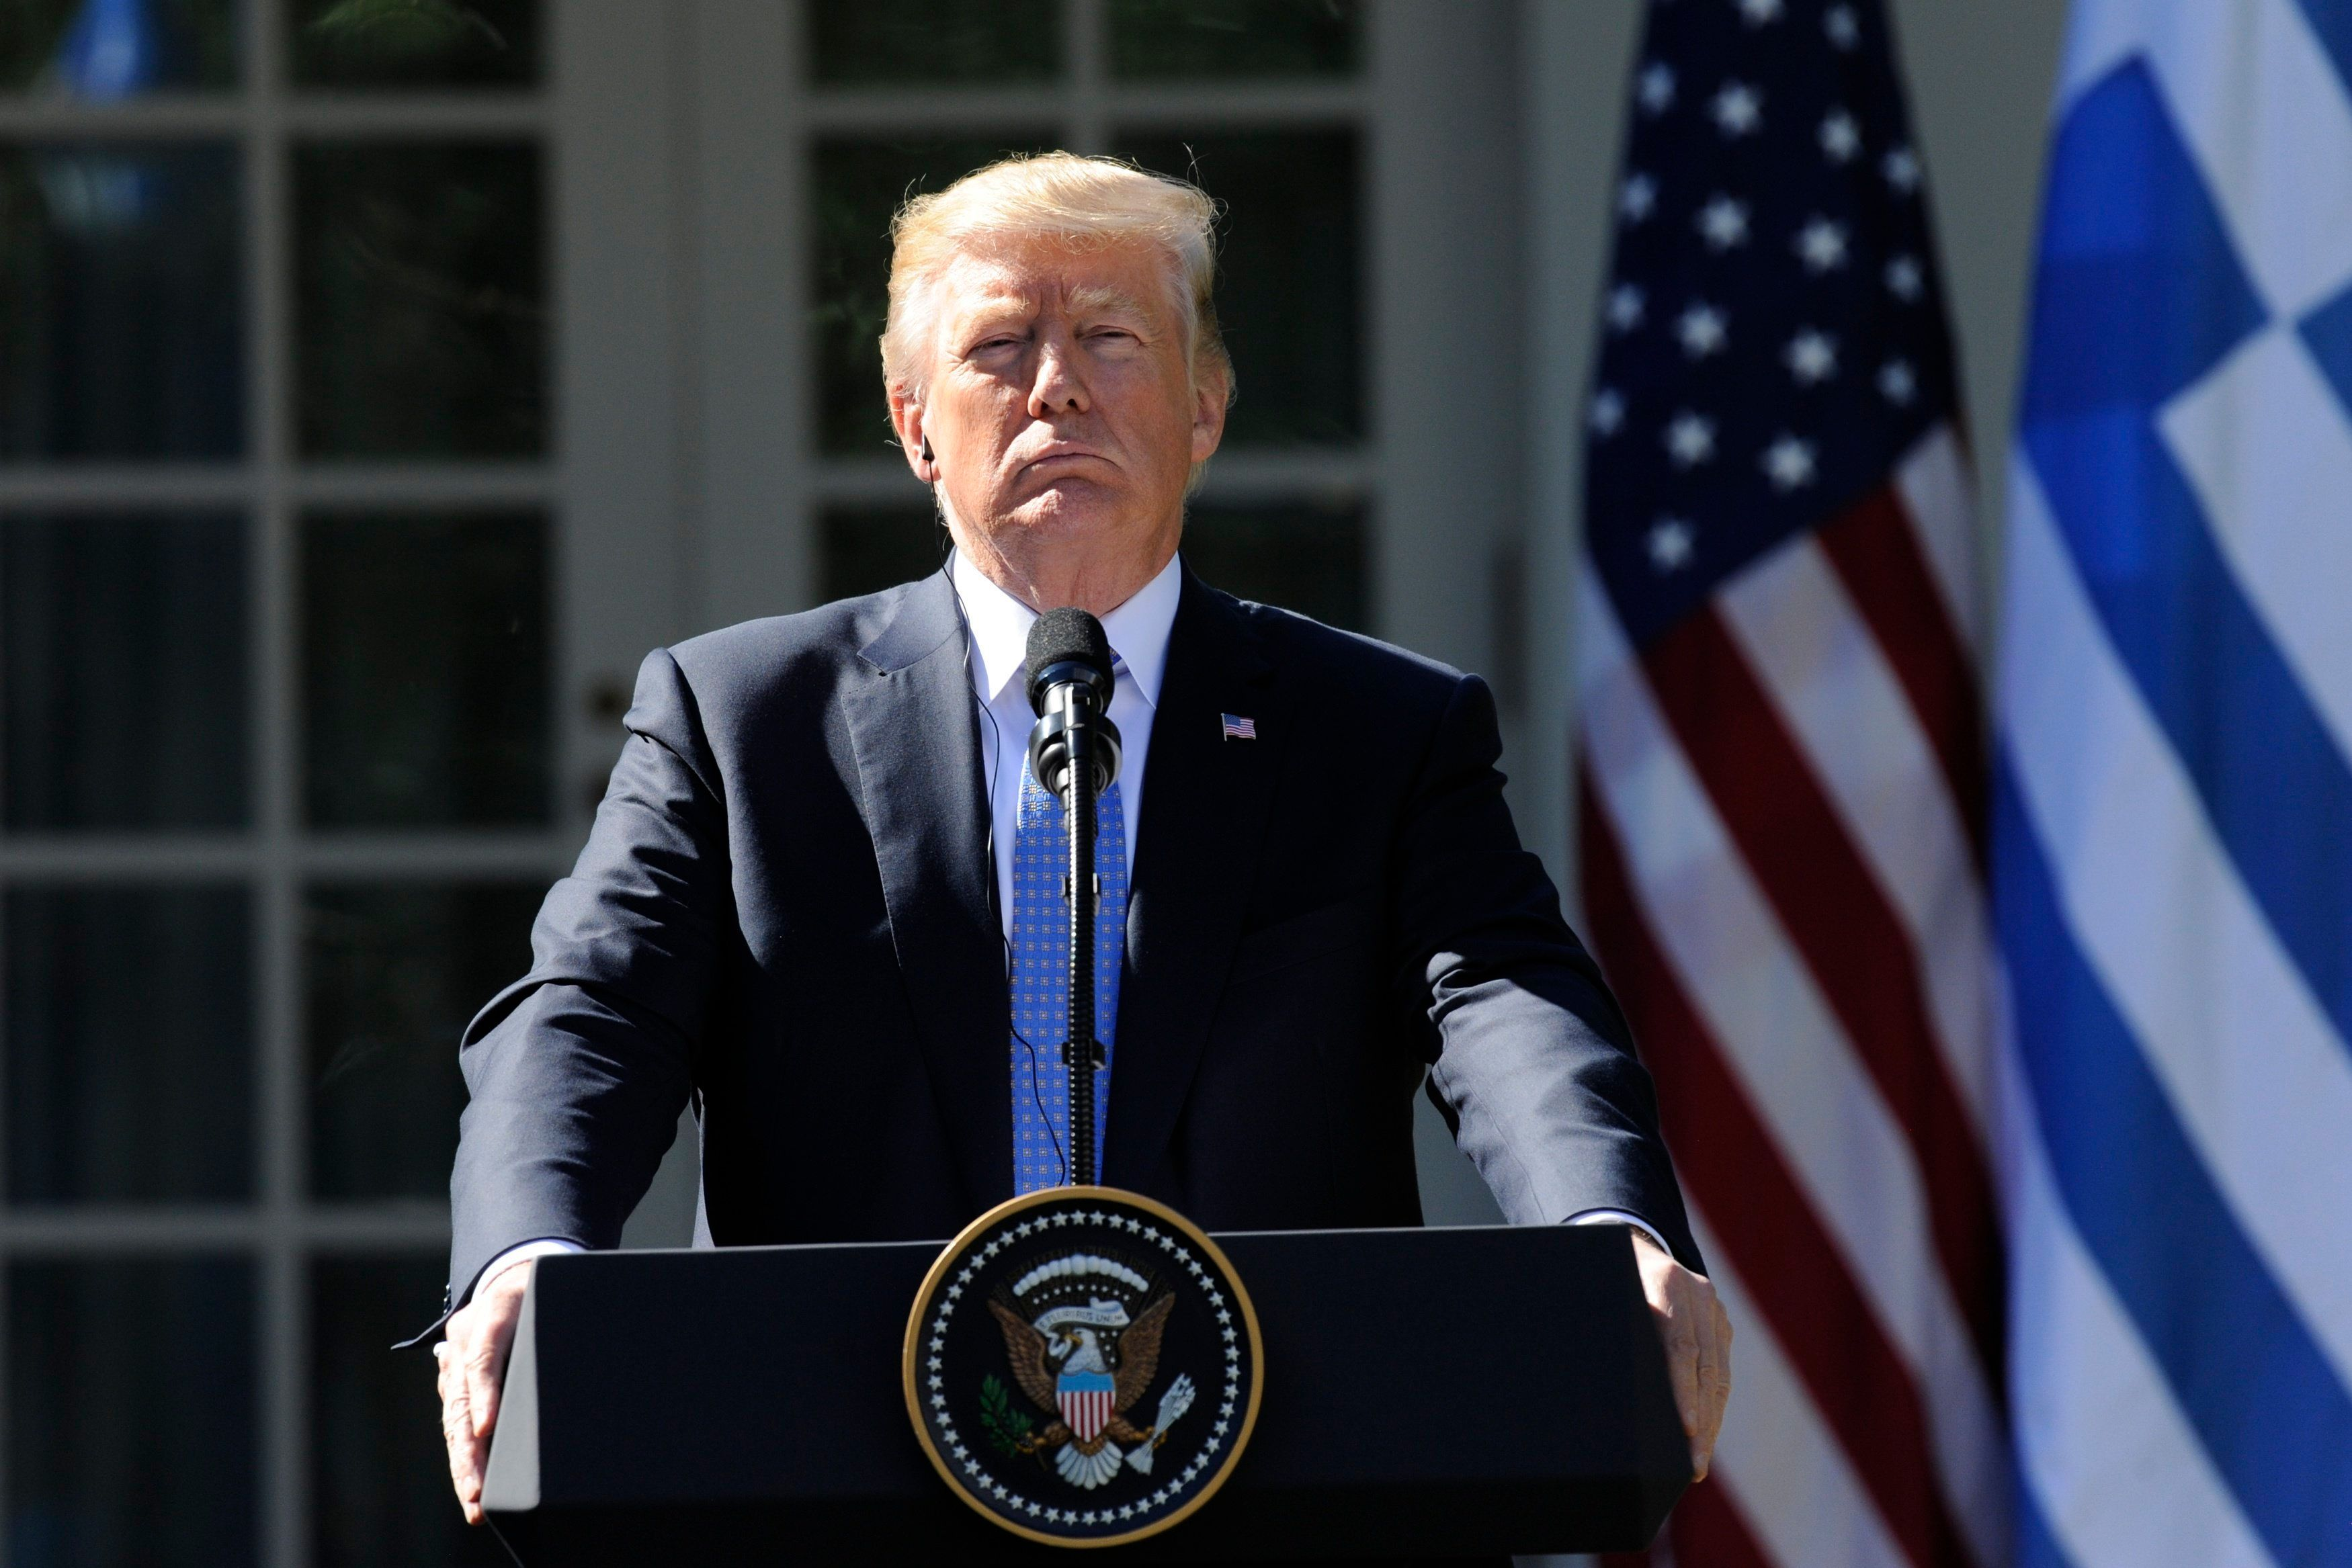 US President Donald Trump holds a joint press conference with Greek Prime Minister Alexis Tsipras in the Rose Garden at the White House in Washington, DC on October 17, 2017. / AFP PHOTO / Jason Connolly        (Photo credit should read JASON CONNOLLY/AFP/Getty Images)